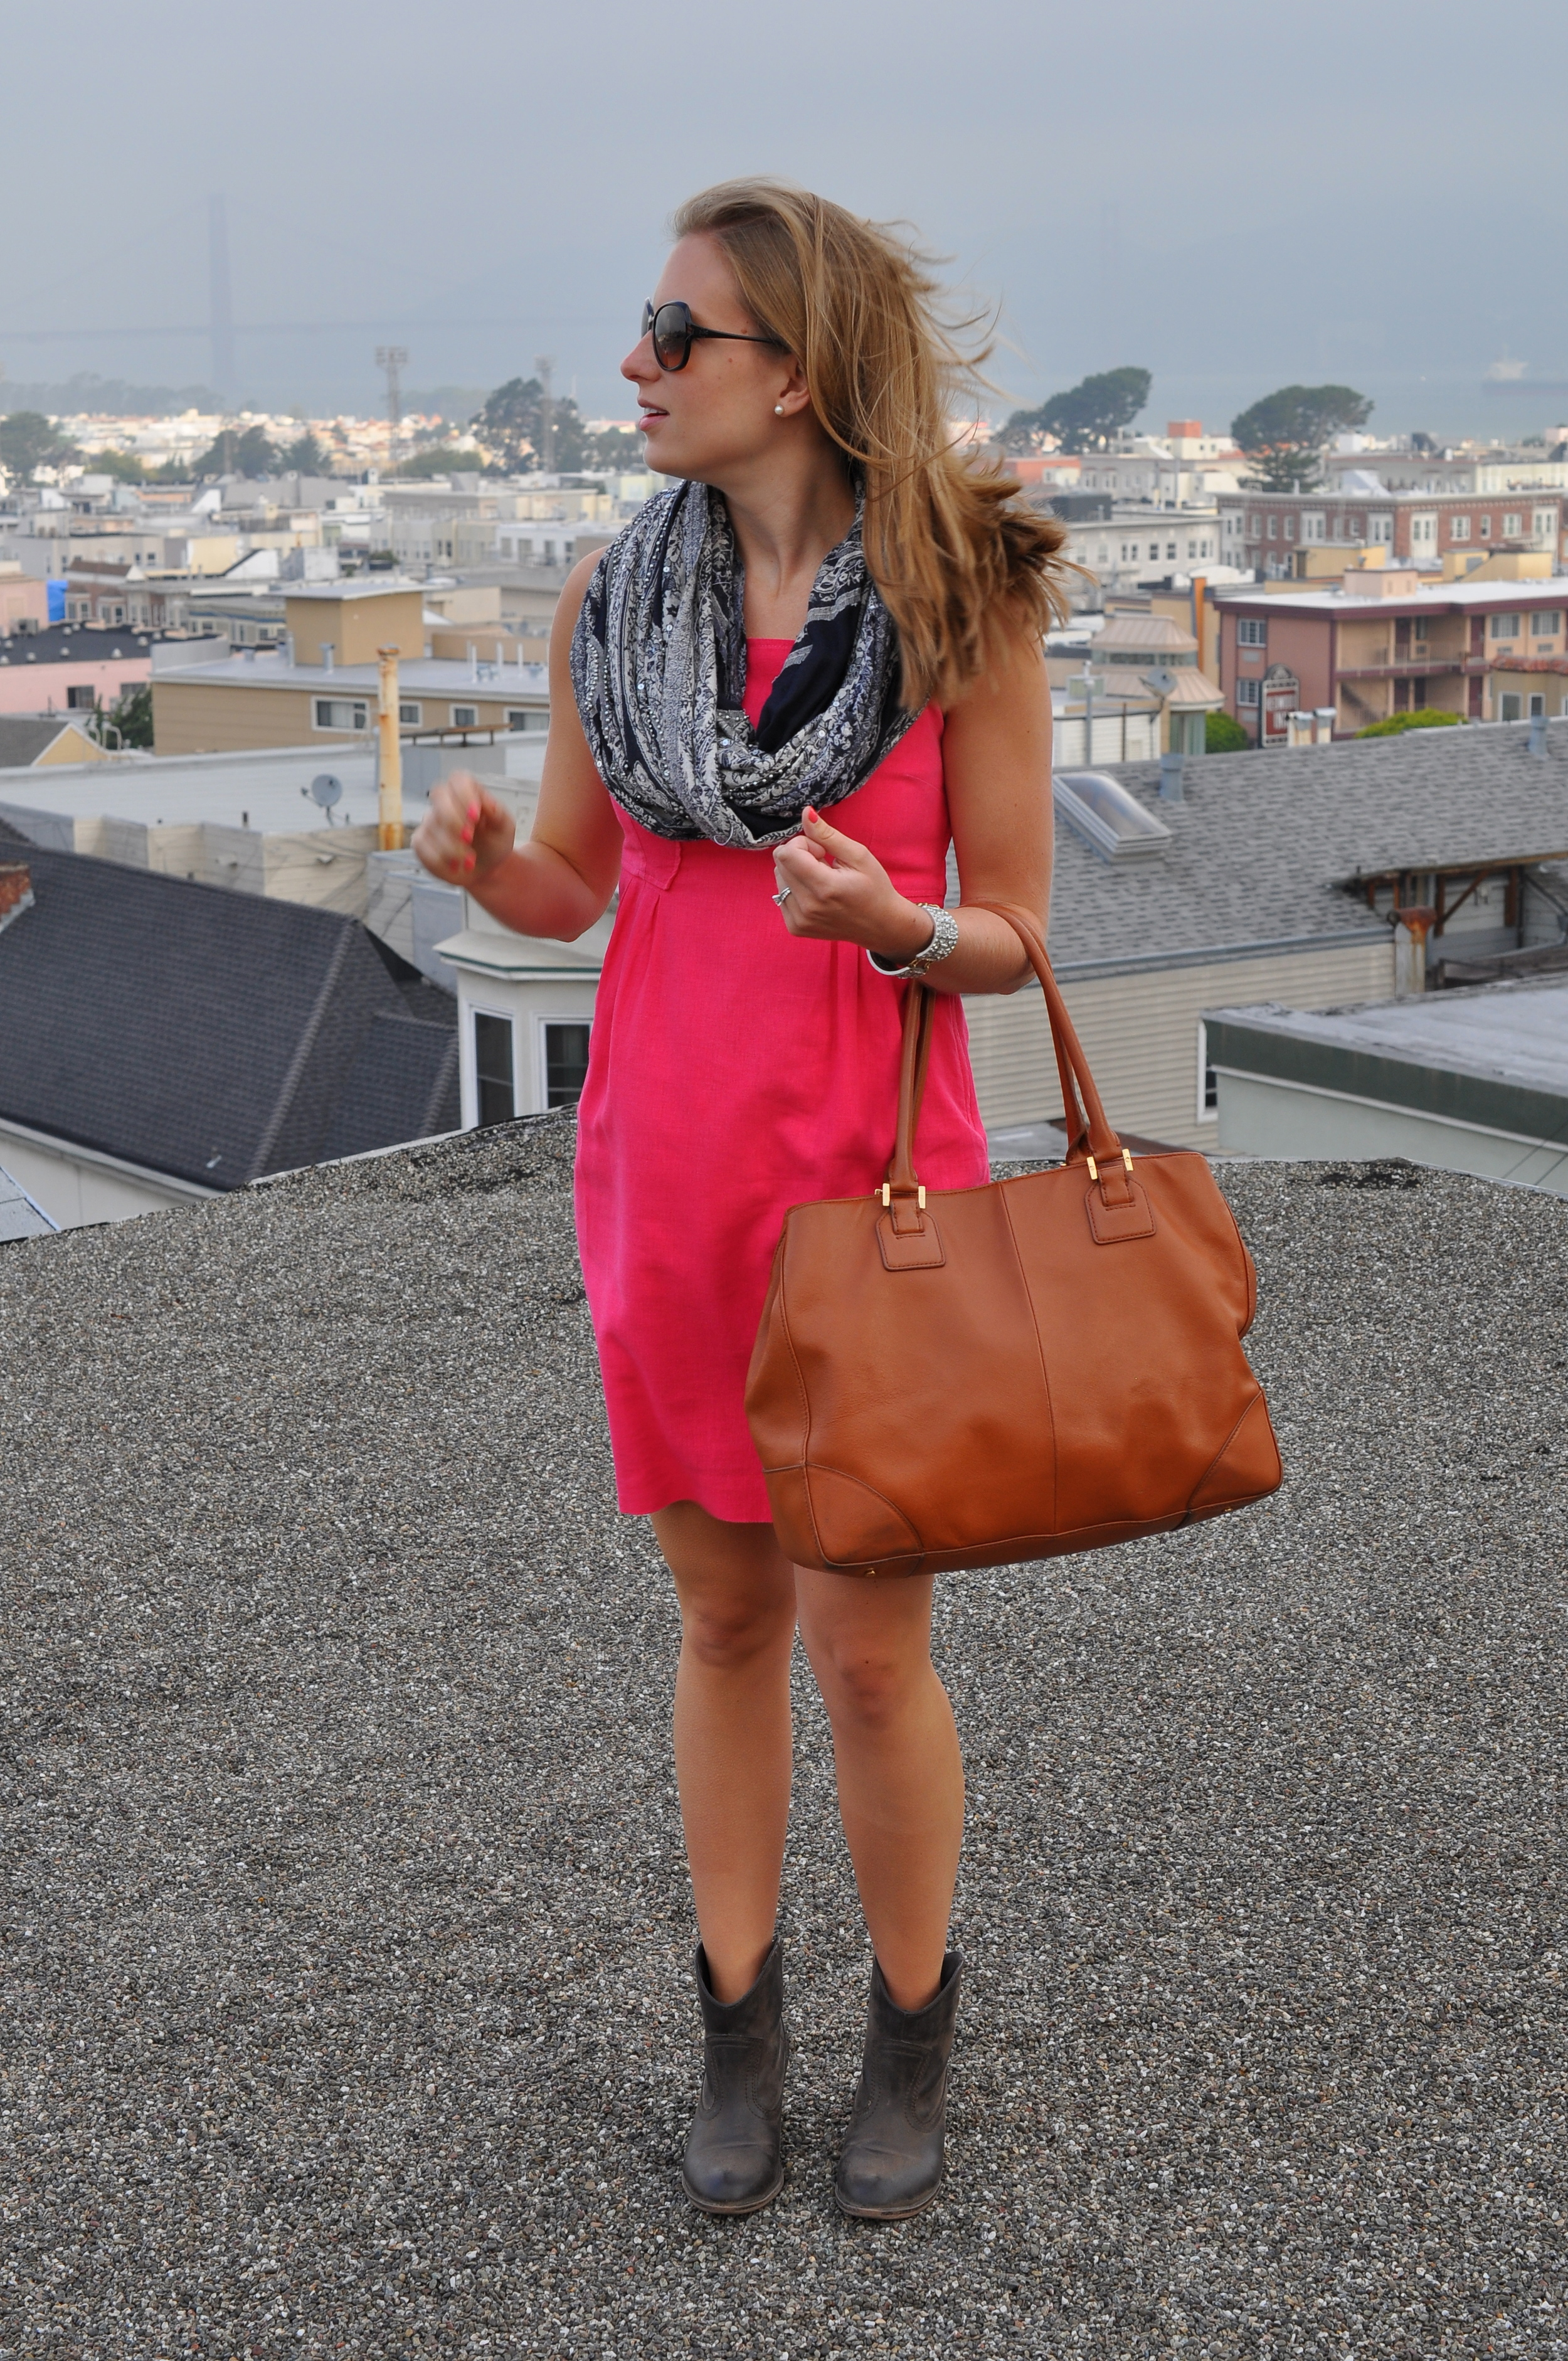 Anthropologie dress (old), Anthropologie scarf (old), Rocket Dog boots, J. Crew bracelet (old), Tory Burch bag, Tory Burch sunglasses